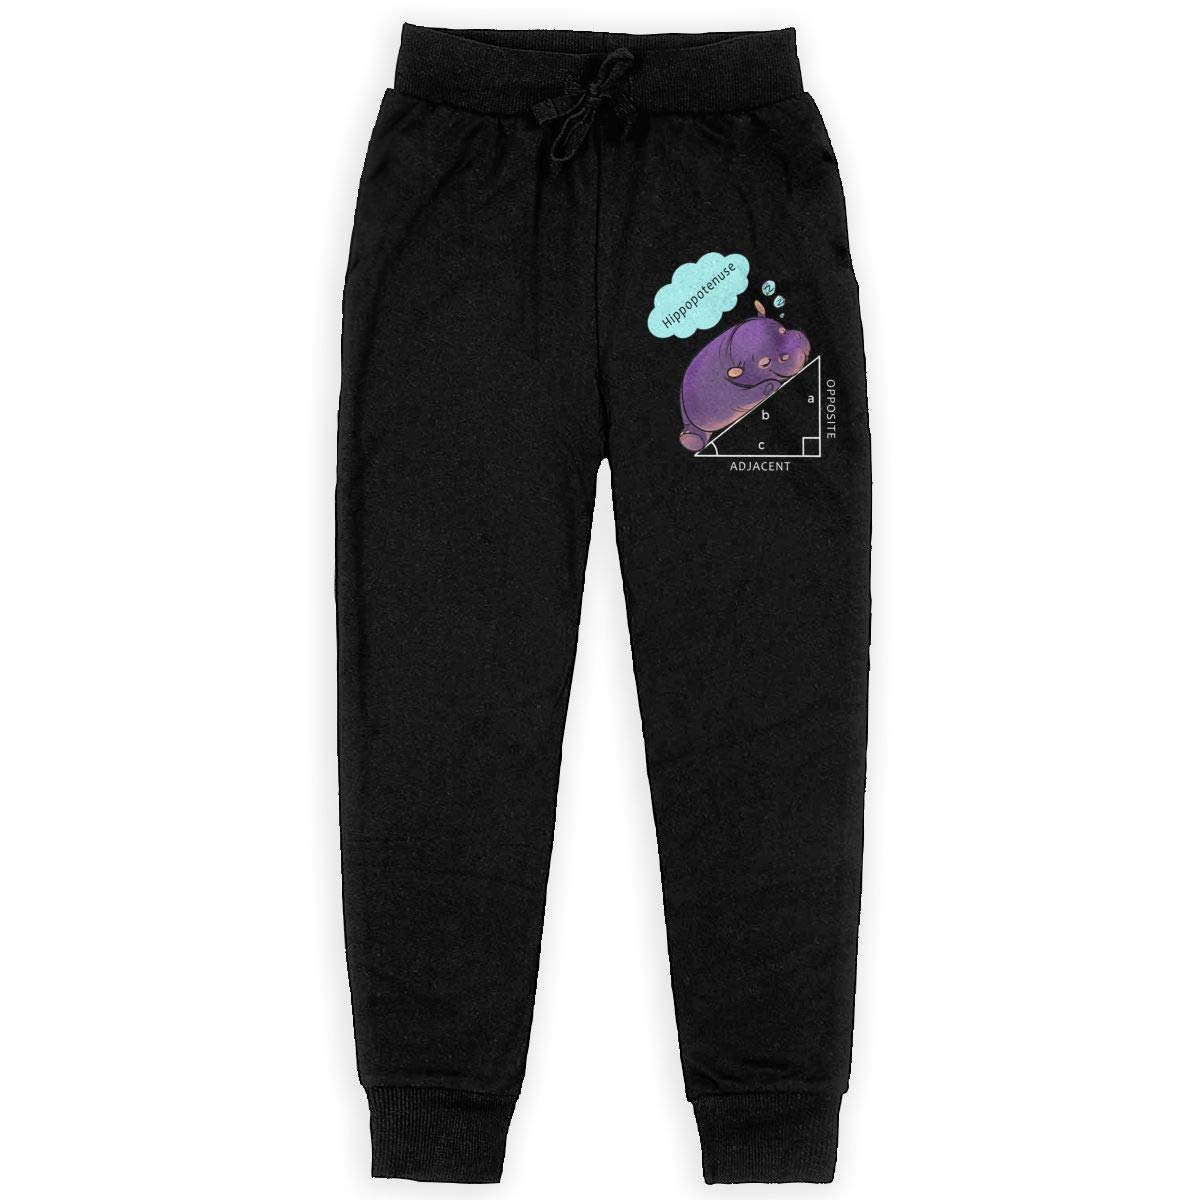 Unisex Young Math Hypotenuse Hippo Elastic Daily Sweatpants for Boys Gift with Pockets Pajamas